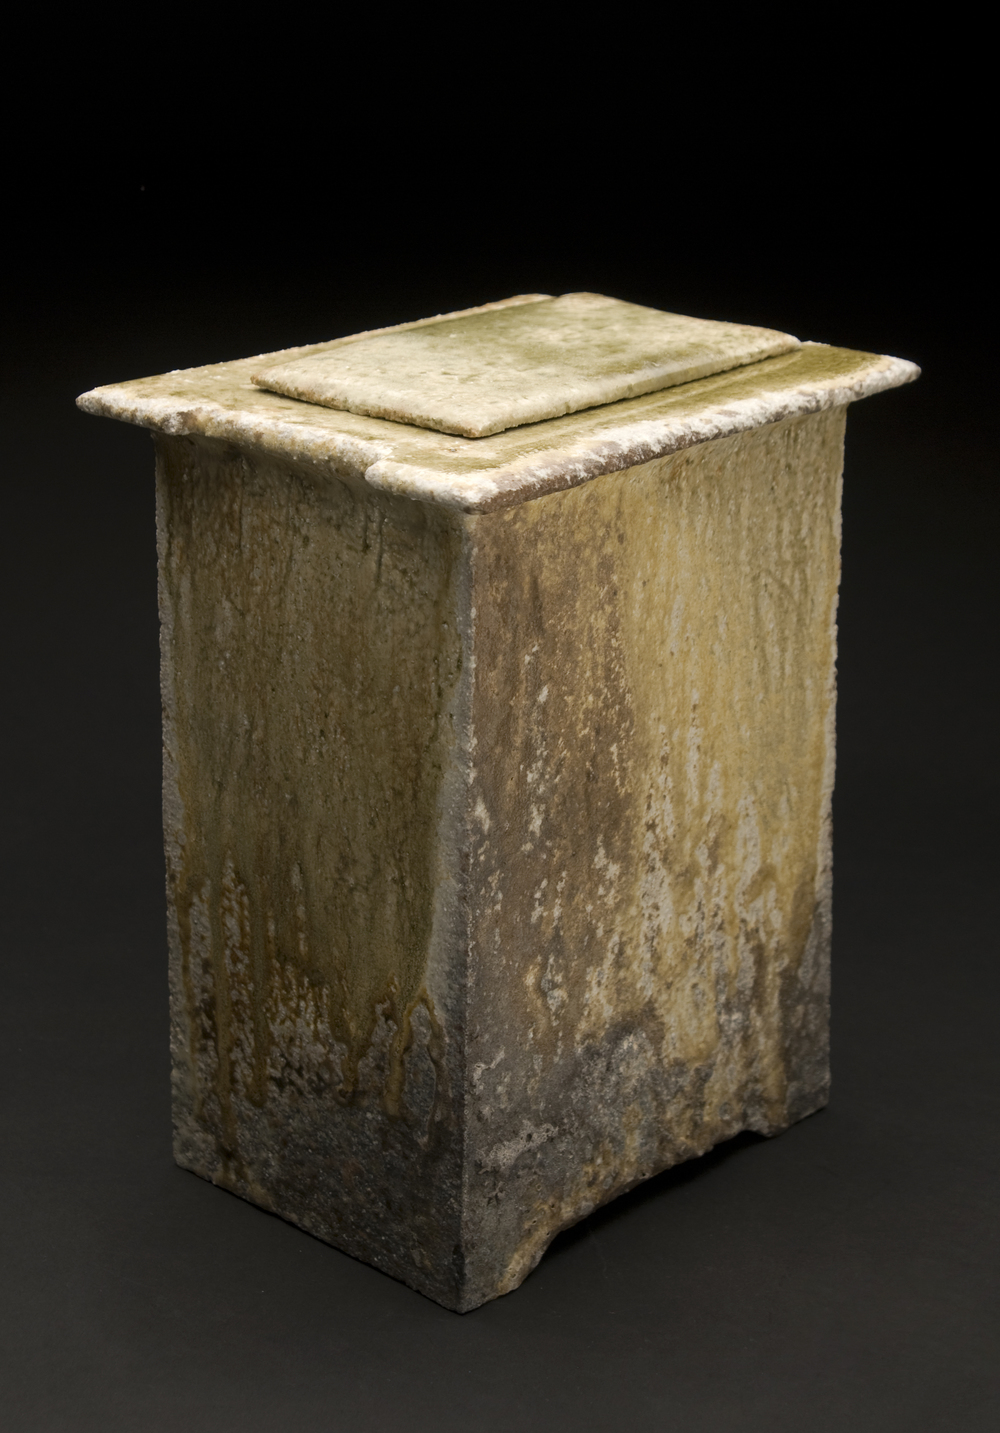 Yoh Tanimoto    Toubako (Large)  , 2011 Fired Ceramic 10 x 8 x 6 inches  /  25.4 x 20.3 x 15.2 cm  /  YTa 1